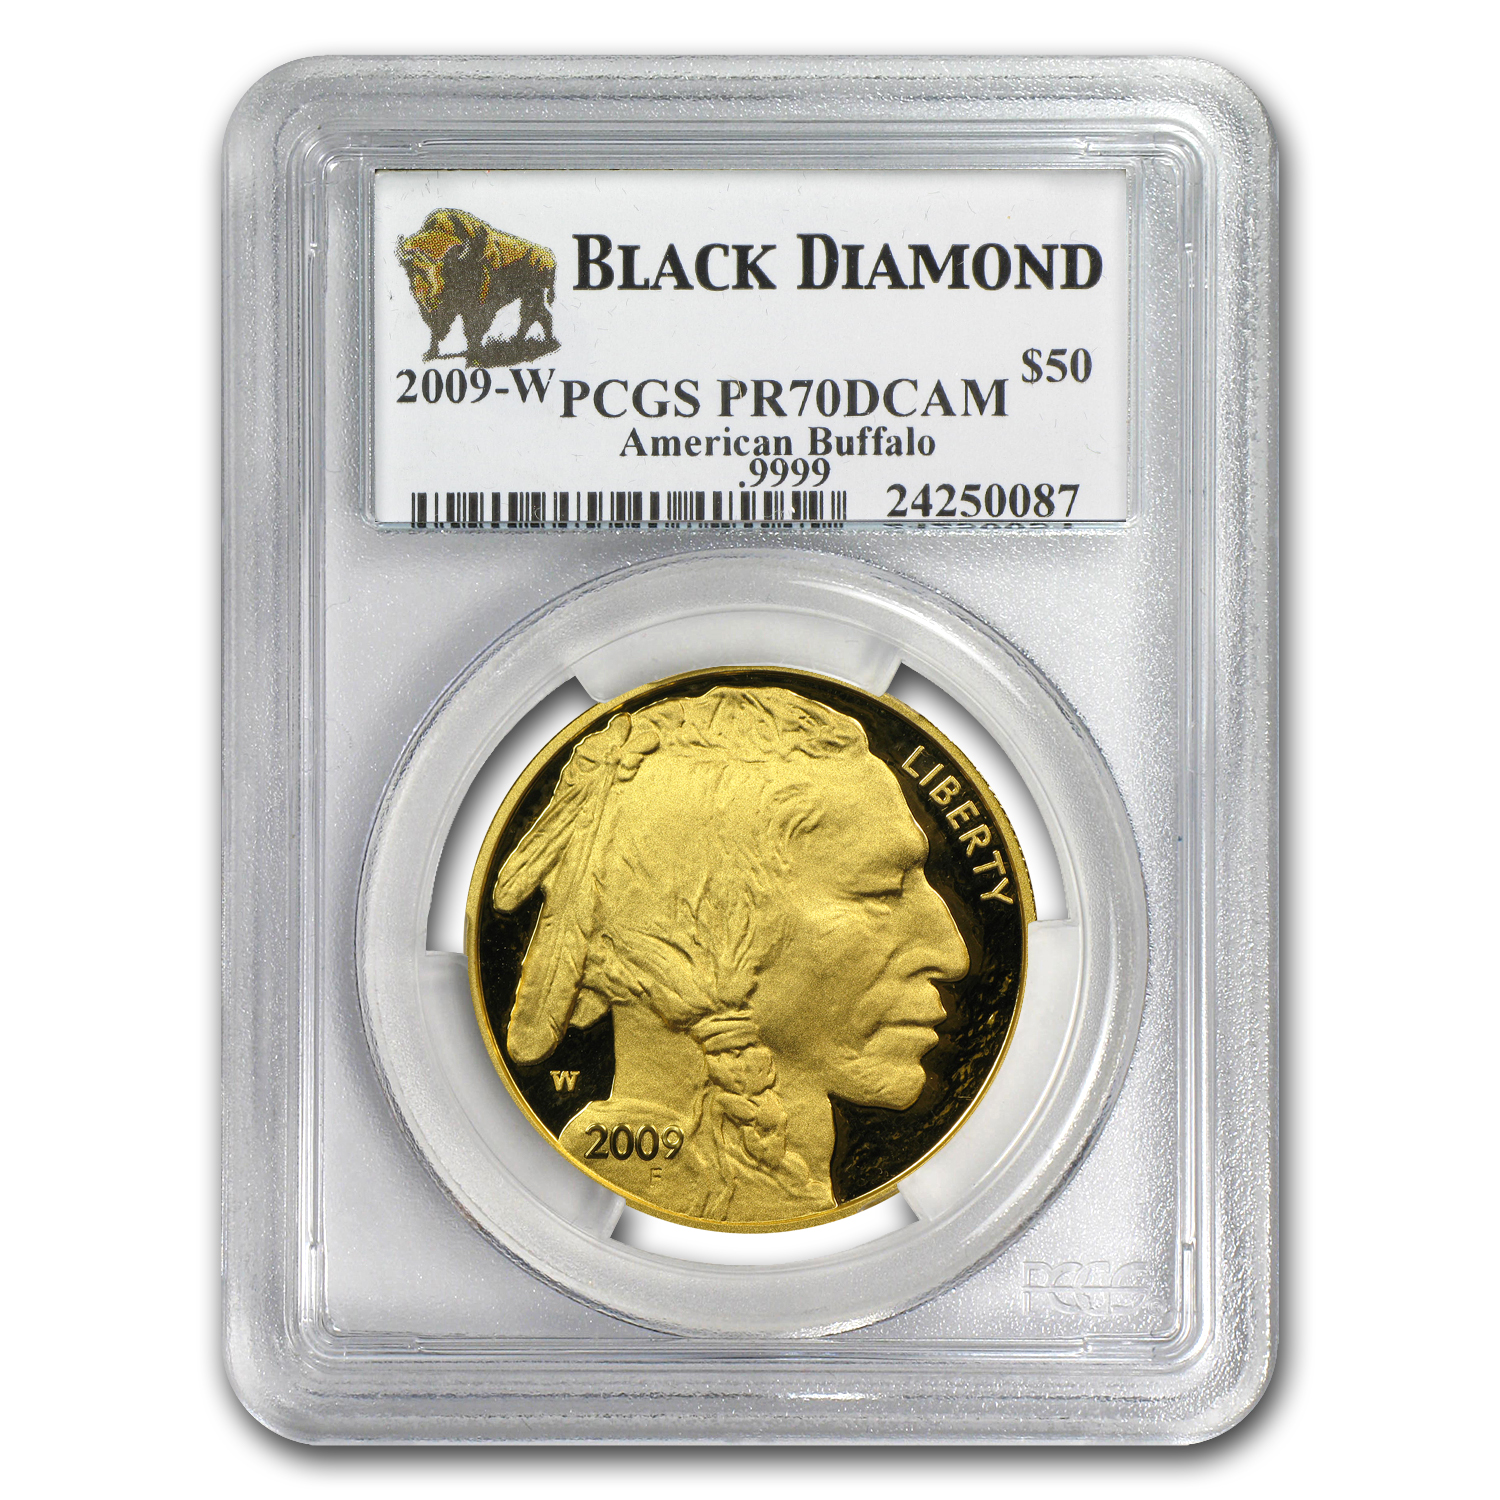 2006-2012 6-Coin 1 oz Gold Buffalo Set PR-70 PCGS (Black Diamond)